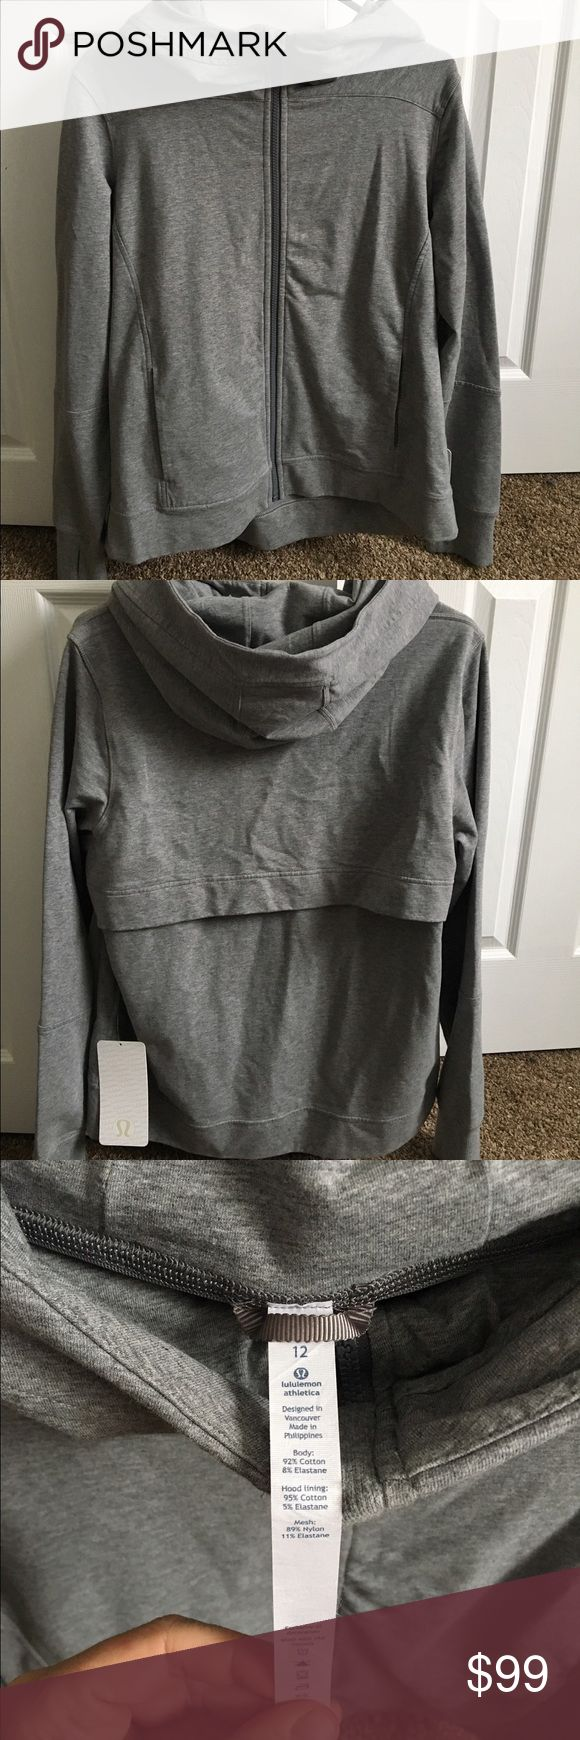 Lululemon belle hoodie gray nwt size 12 Cold weather won't slow you down, thanks to Lululemon. Womens. Full zip jacket. French Terry fabric with four-way stretch. Oversized hood. Zipper garage protects your chin from chafing. Mesh fabric panel for ventilation.  Pictures speak 1000 words, please ask questions prior to bidding.  Comes from a smoke free home.  Selling only due to the fact it does not fit, received as a Christmas gift.  Retails at $118.  Thanks for looking! lululemon athletica…